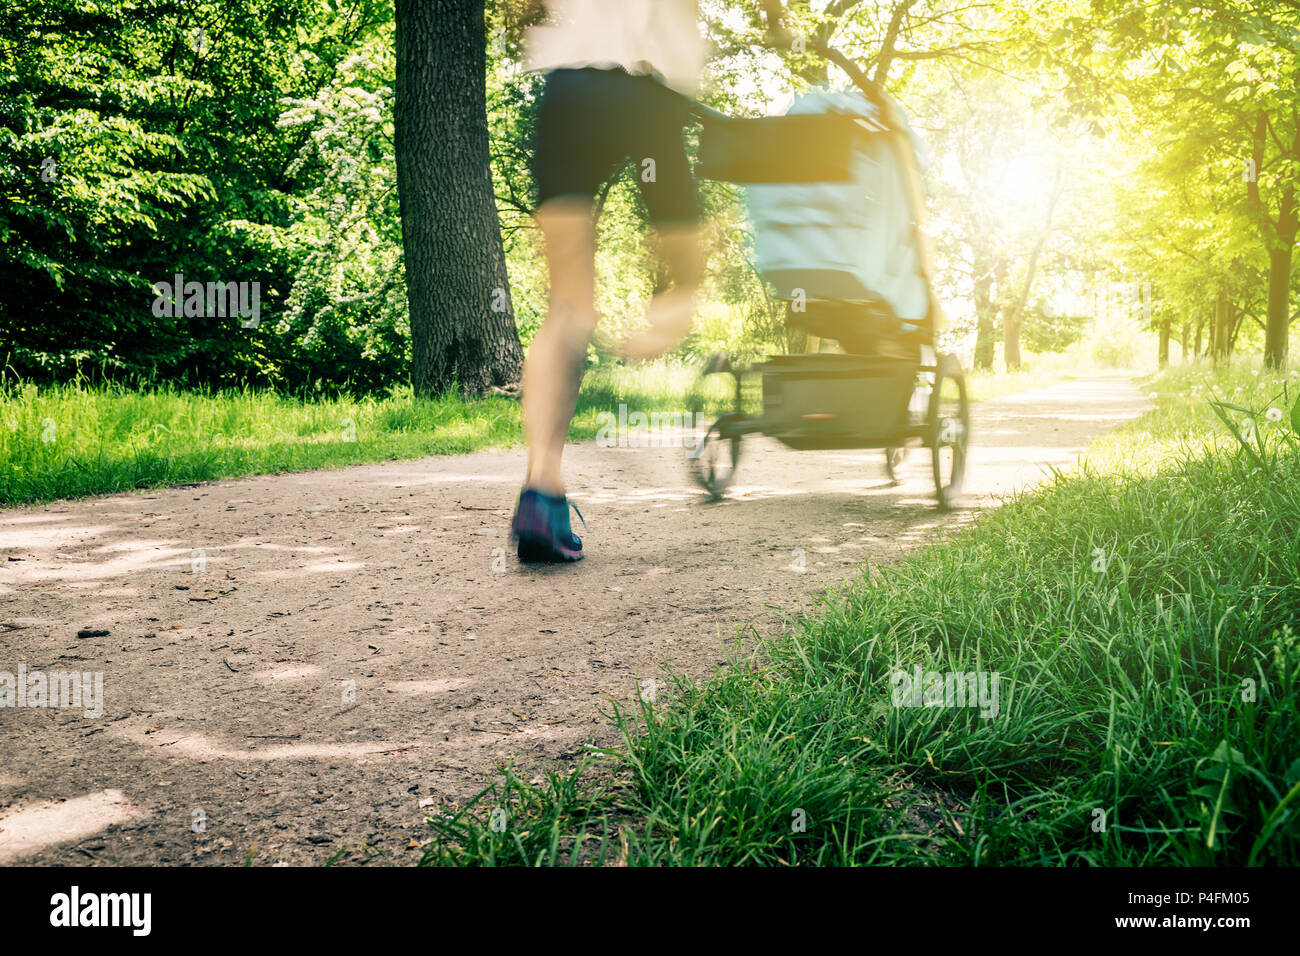 Running woman with baby stroller enjoying summer in park. Jogging or power walking supermom, active family with baby jogger, motion blur. - Stock Image